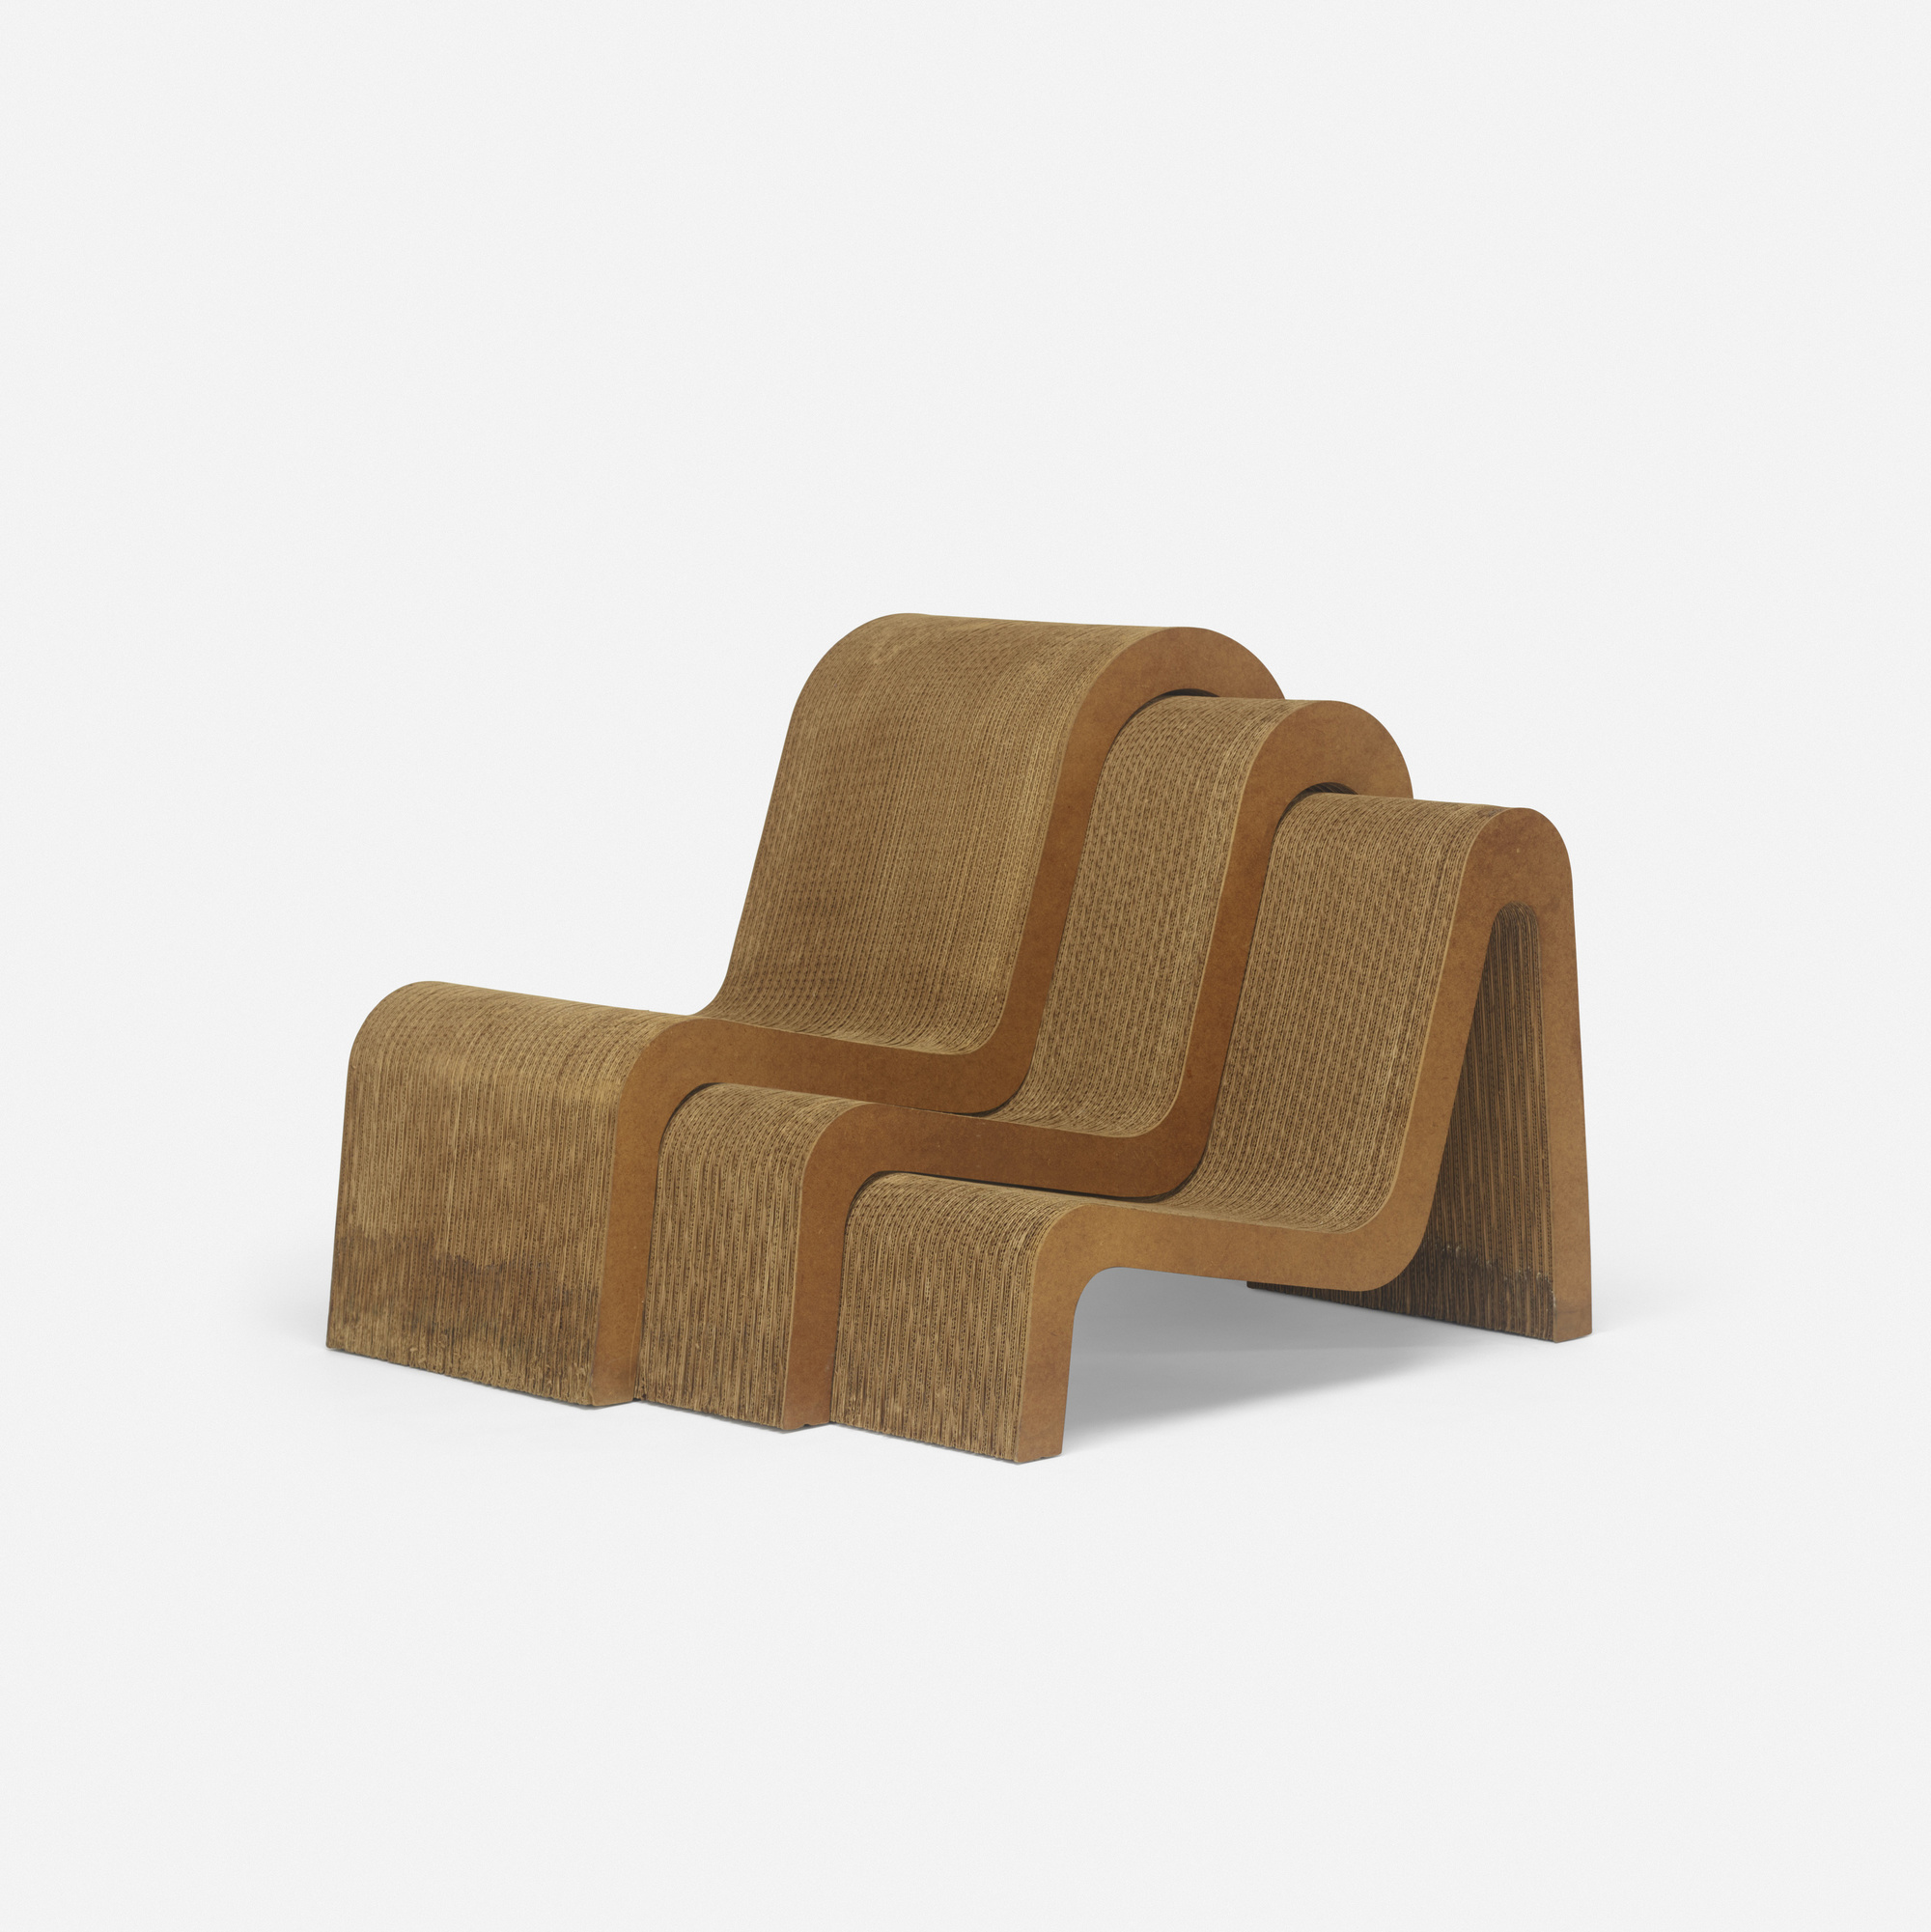 frank gehry furniture -  frank gehry nesting chairs set of three design